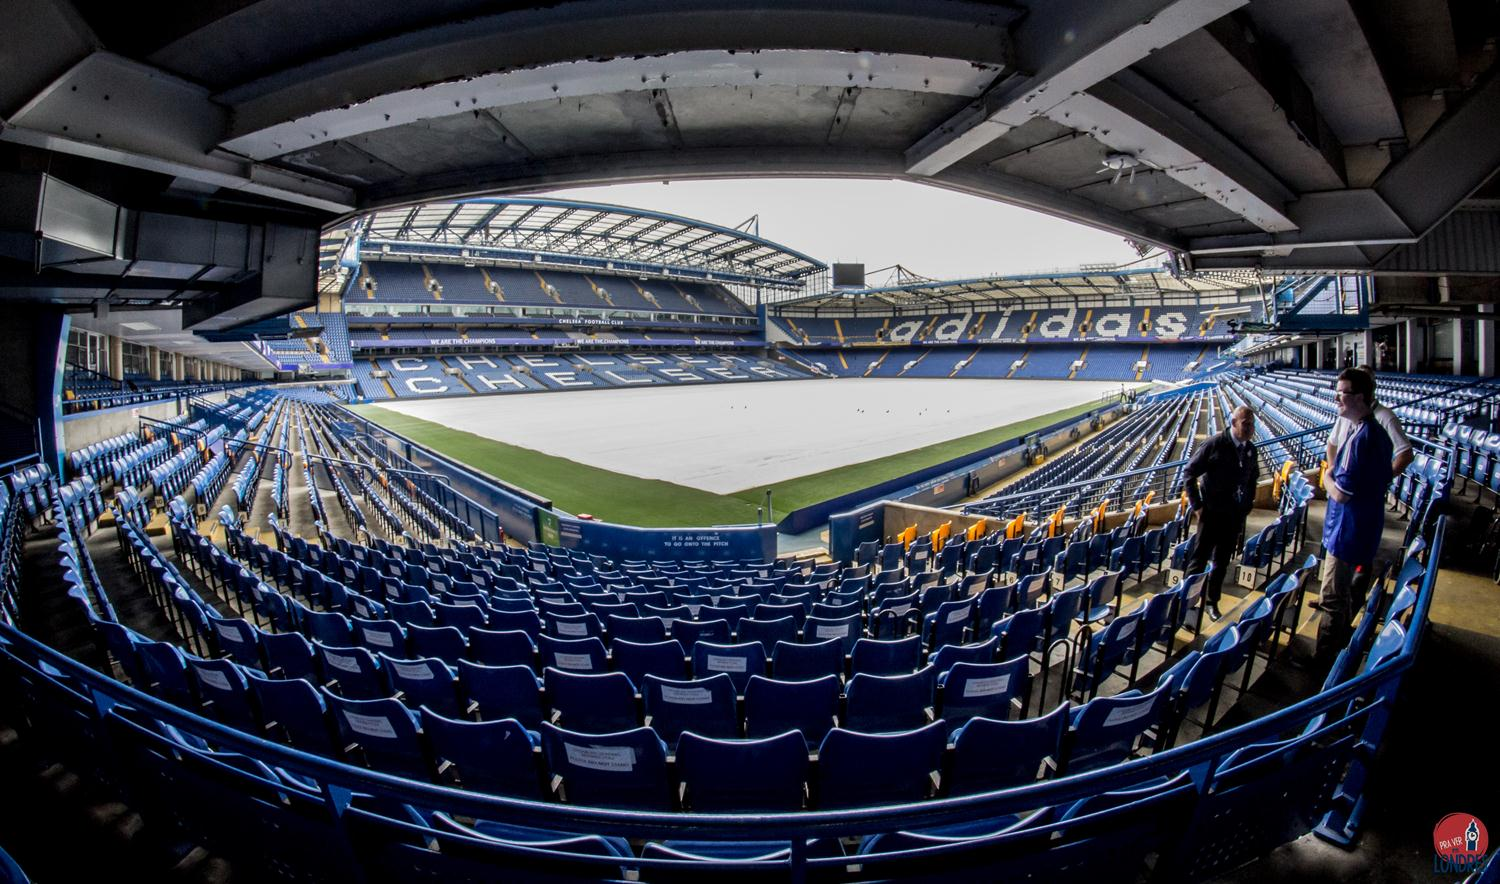 Por dentro do estádio do Chelsea em Londres